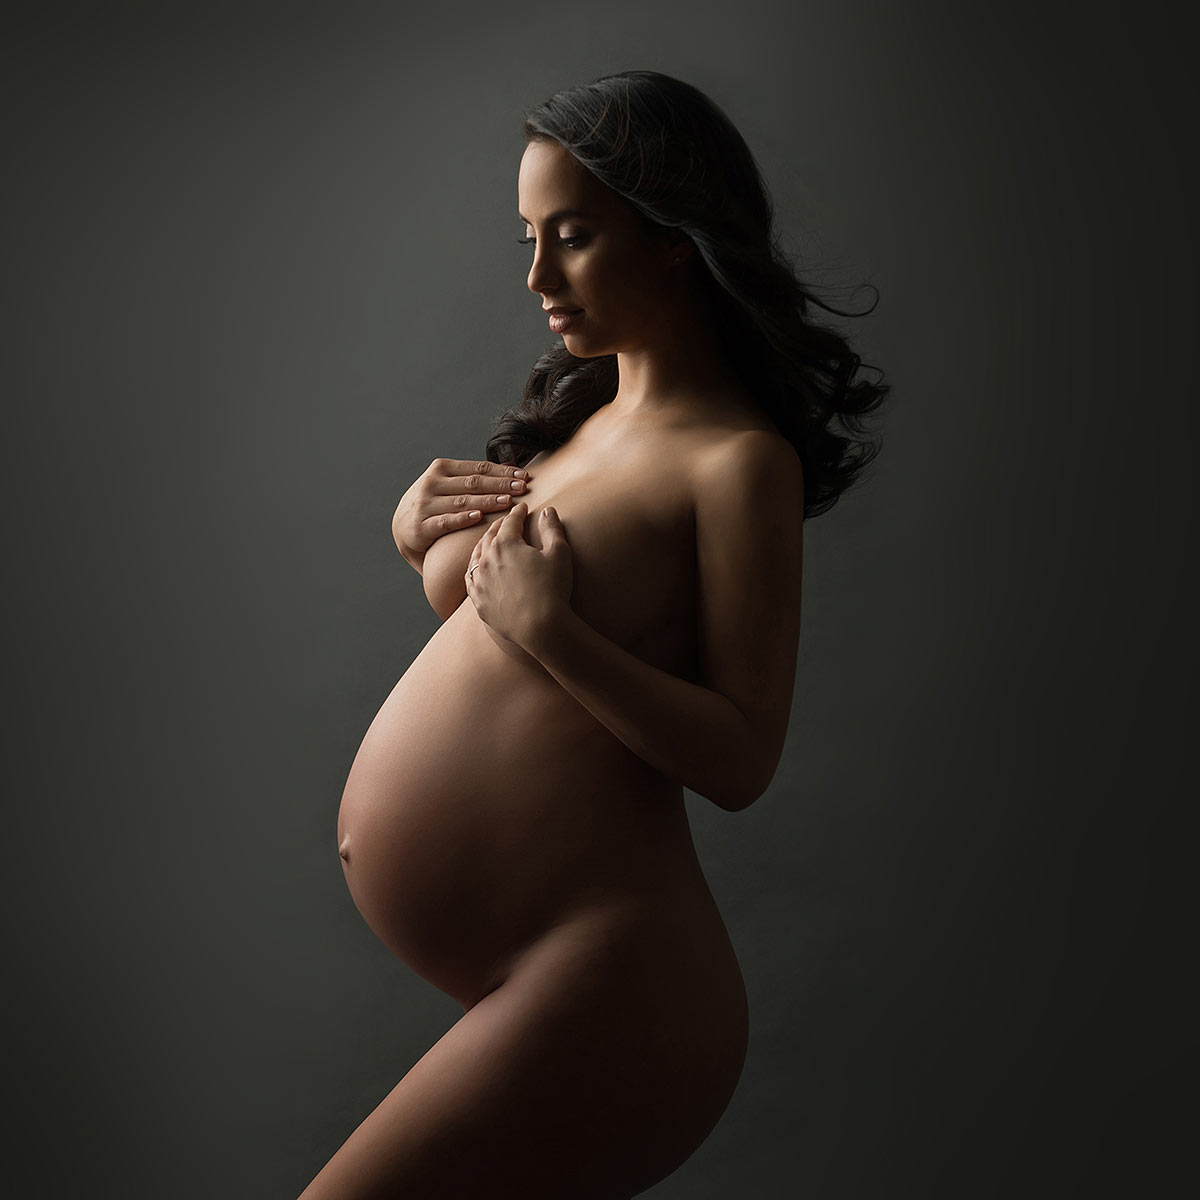 Nude portrait of a pregnant woman covering her breasts